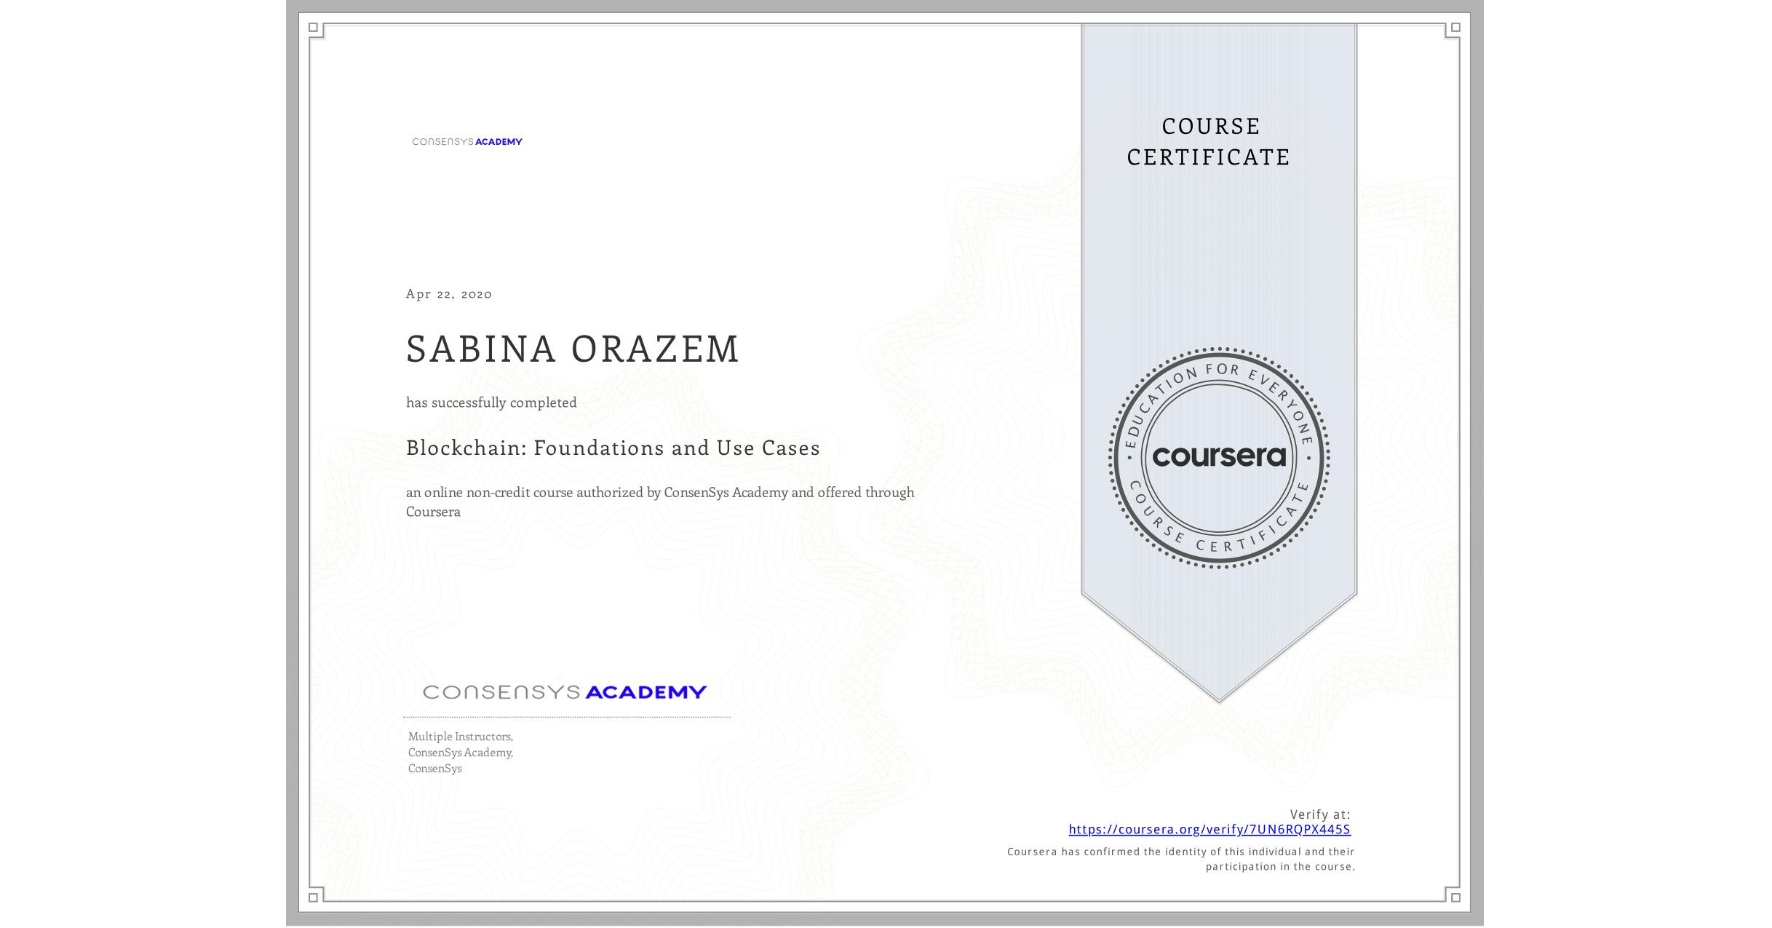 View certificate for SABINA ORAZEM, Blockchain: Foundations and Use Cases, an online non-credit course authorized by ConsenSys Academy and offered through Coursera